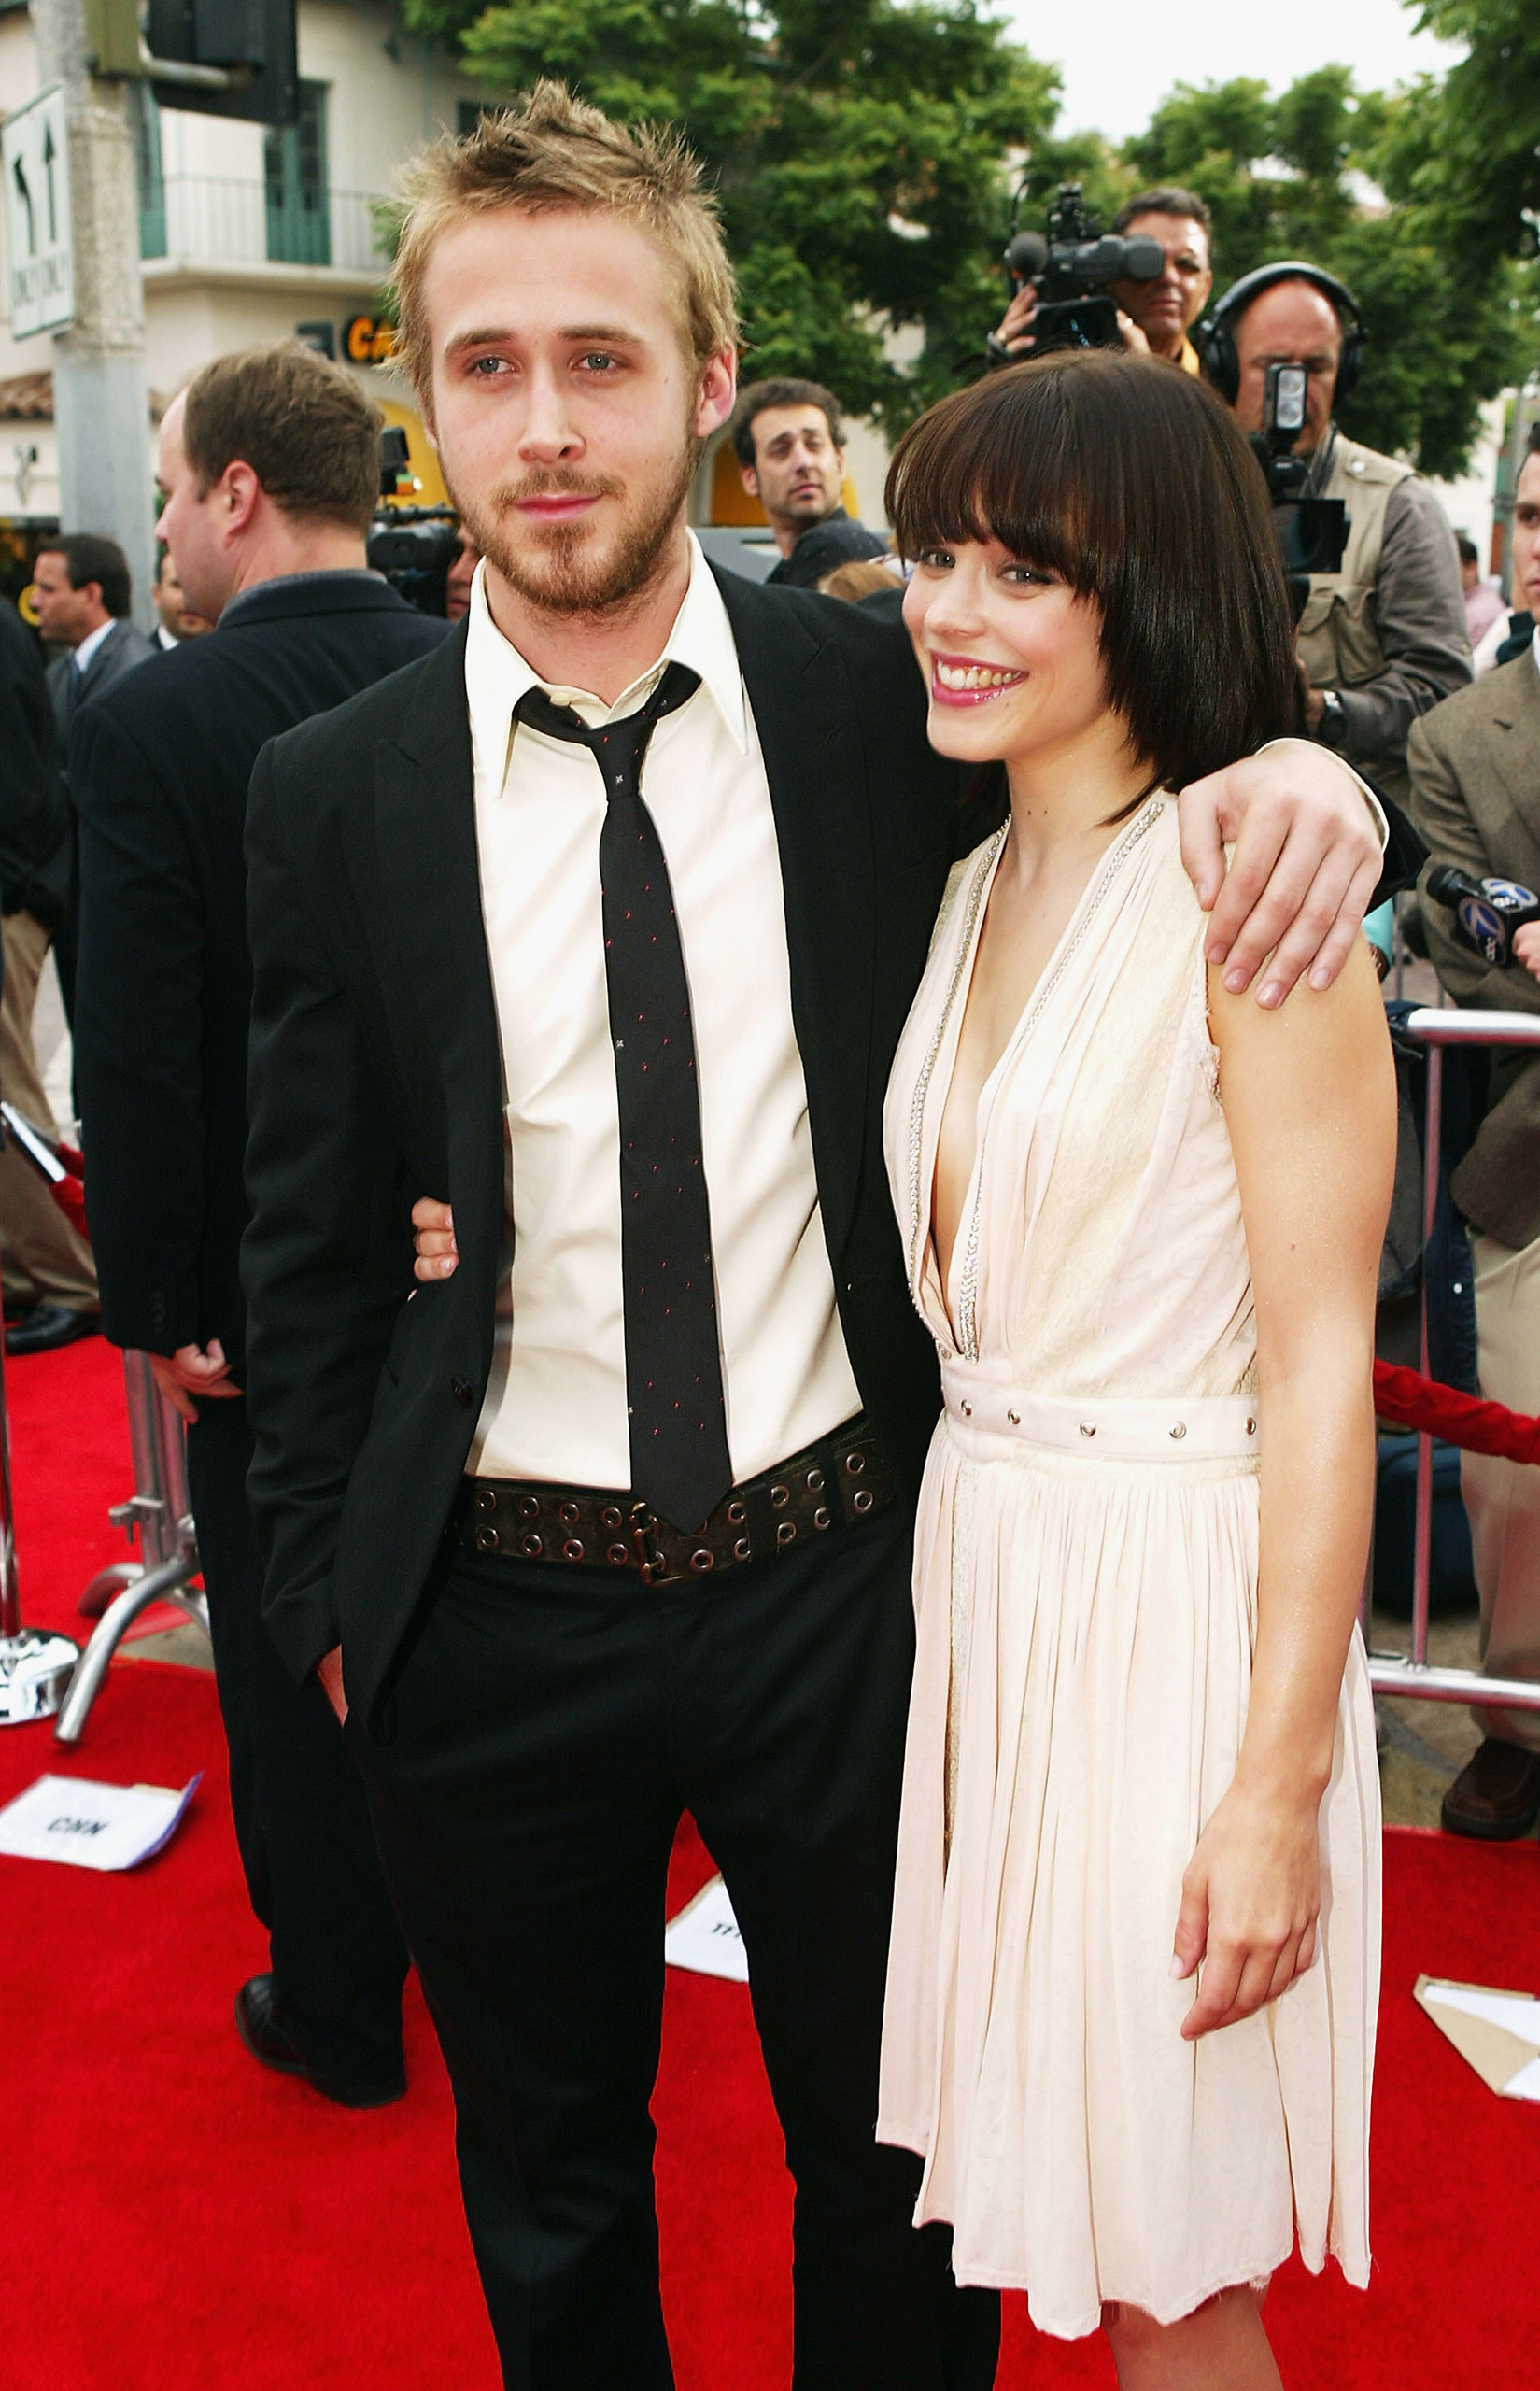 Rachel and Ryan - Rachel McAdams & Ryan Gosling Photo ...